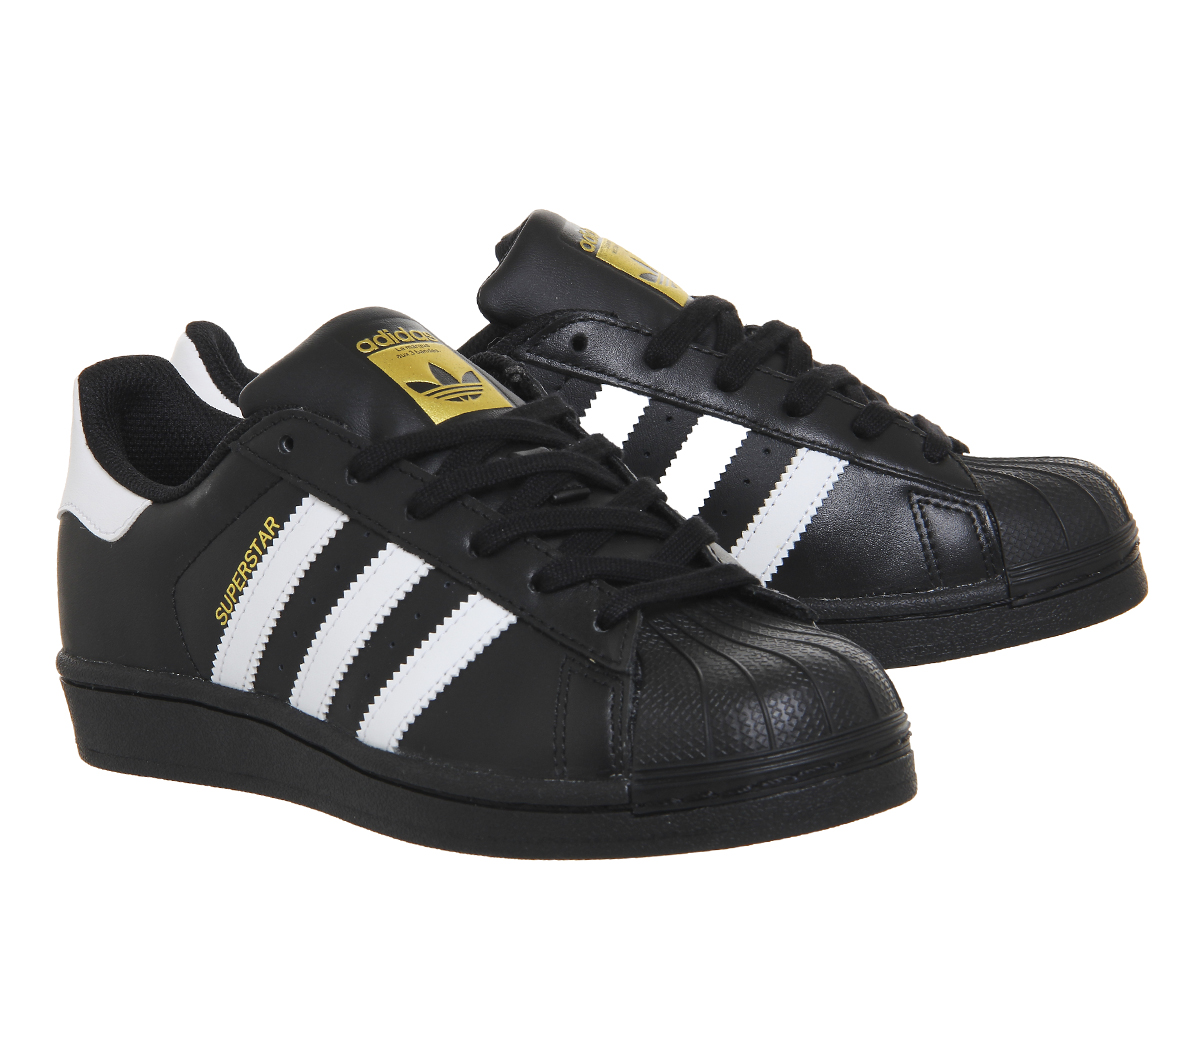 27647d1b5f8 Womens-Adidas-Superstar-Black-White-Foundation-Trainers-Shoes thumbnail